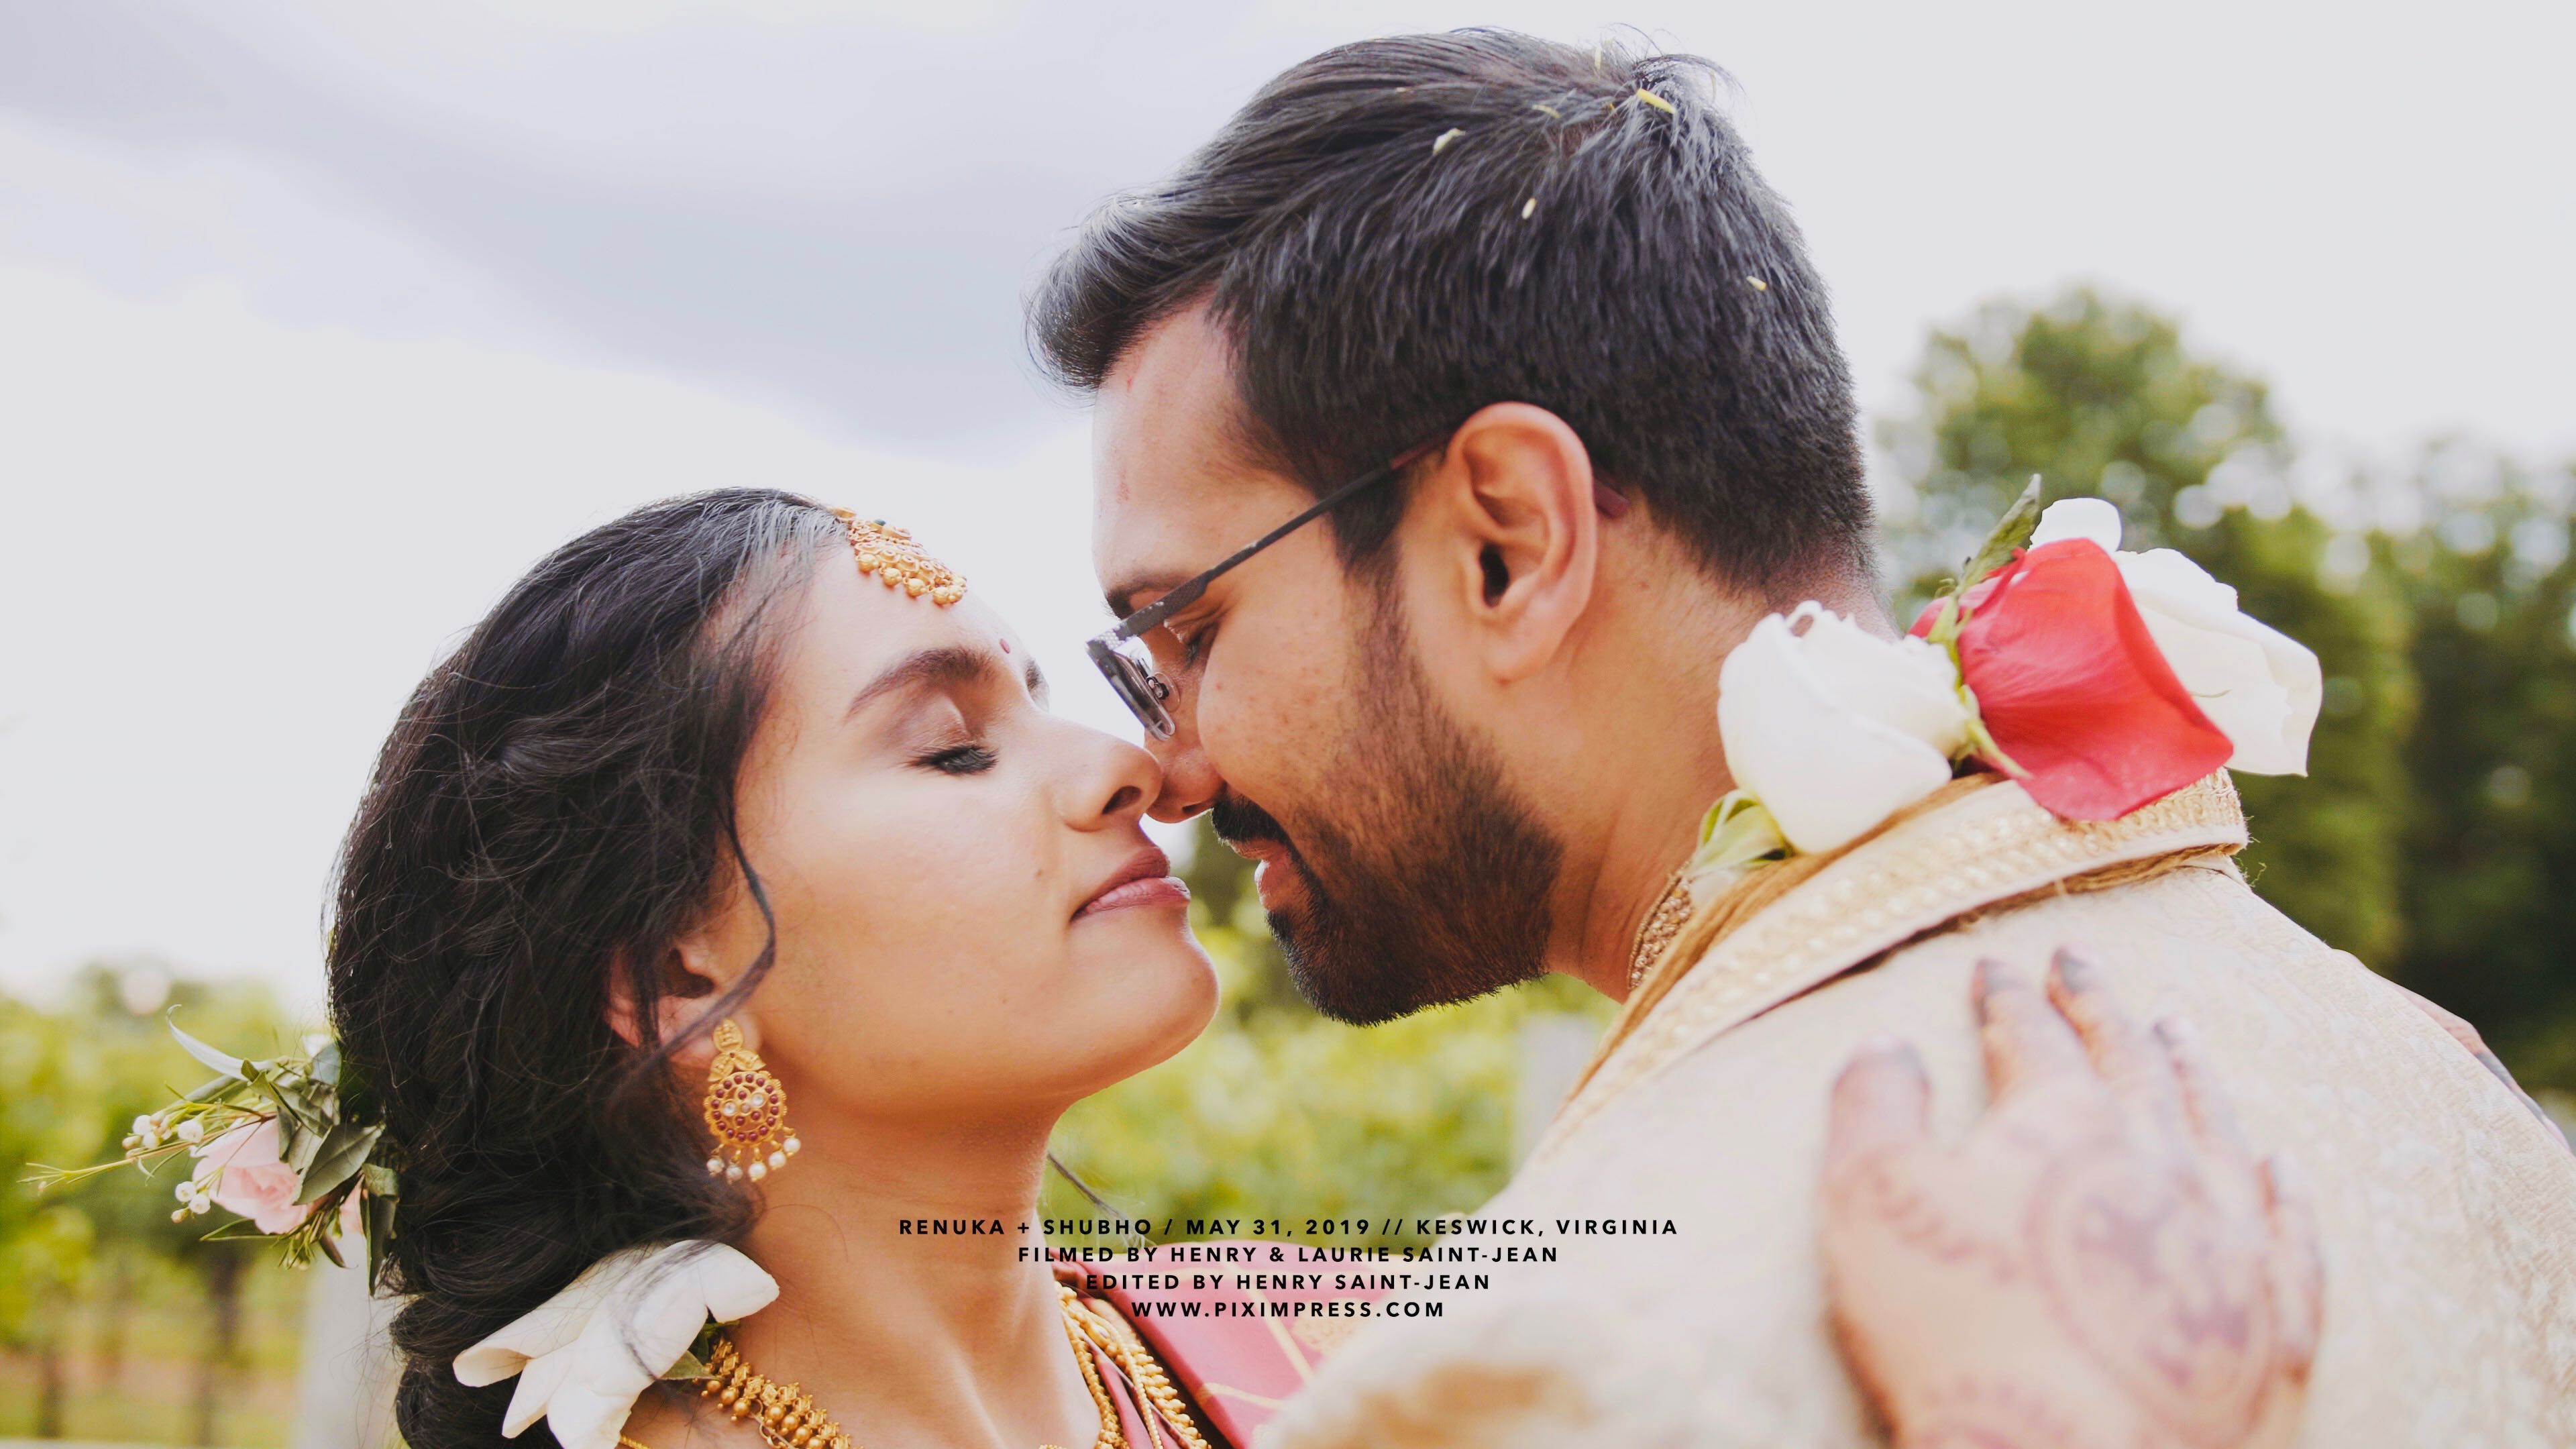 Rebuka + Shubho | Keswick, Virginia | Keswick Vineyards